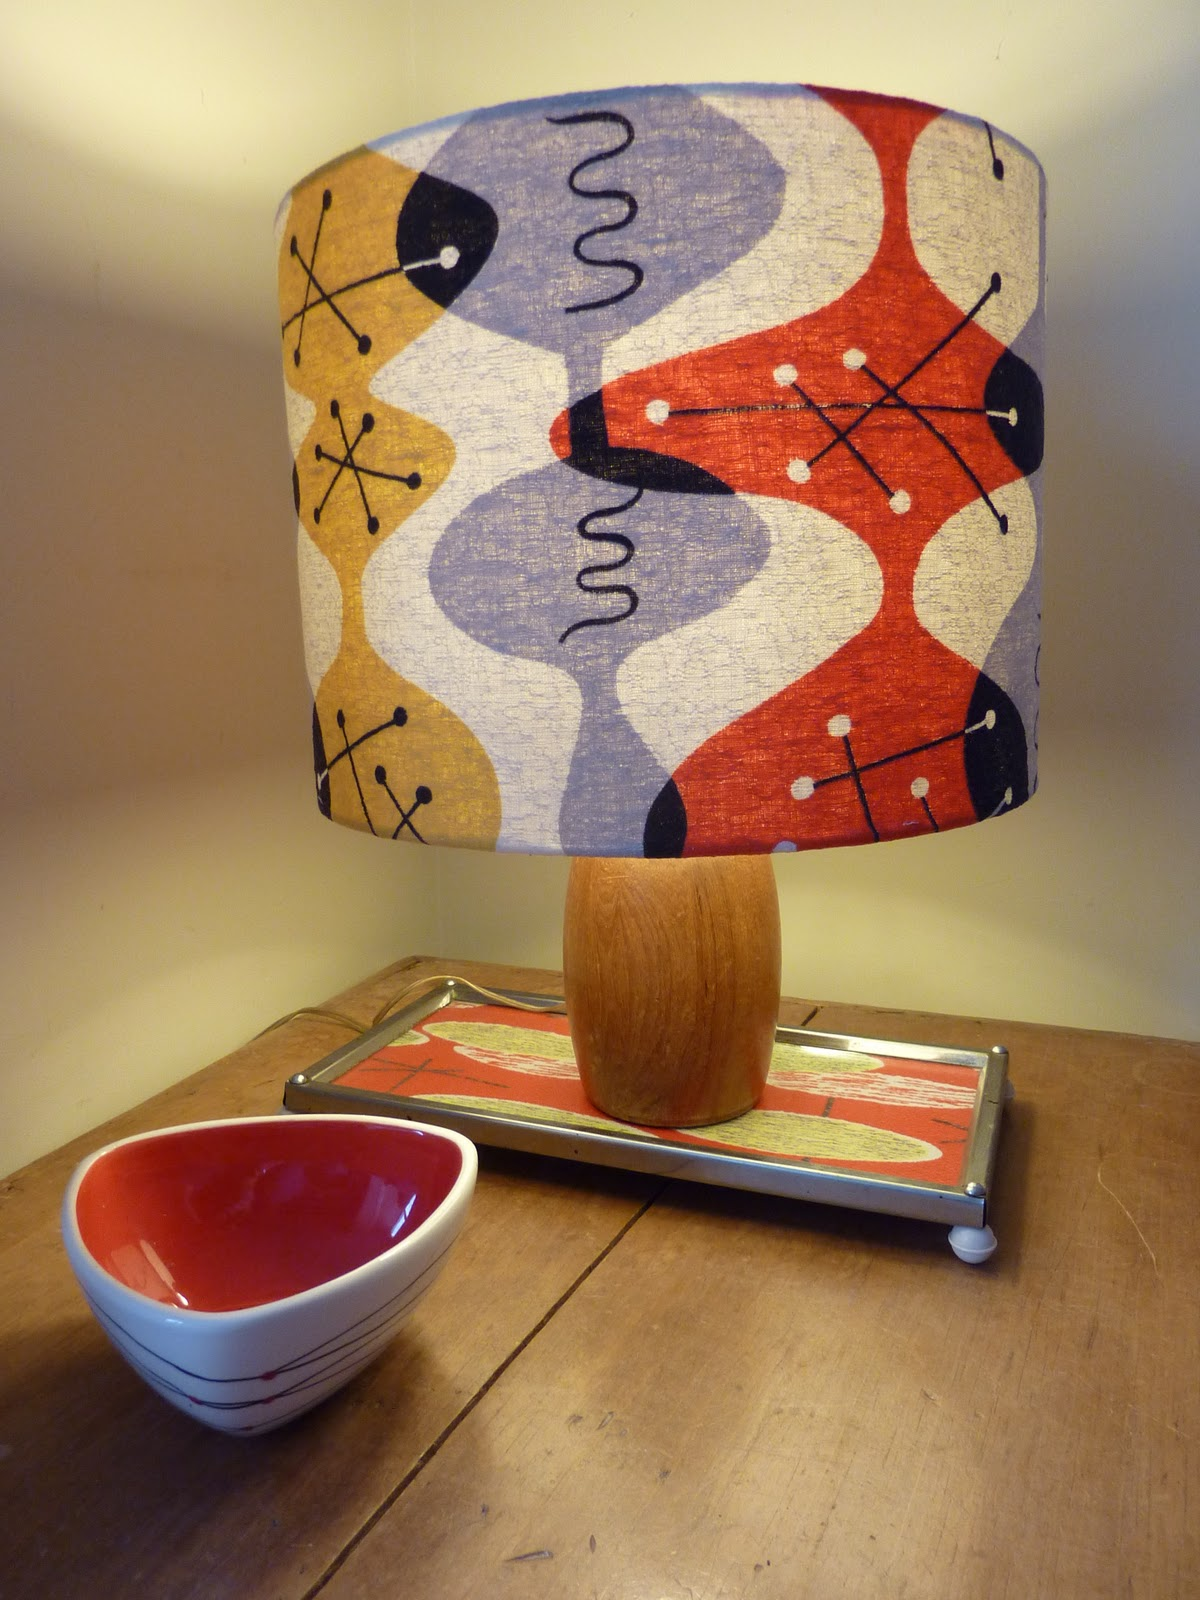 Choosing A Lampshade The Custards Lampshade Making Simple But Quite Effective